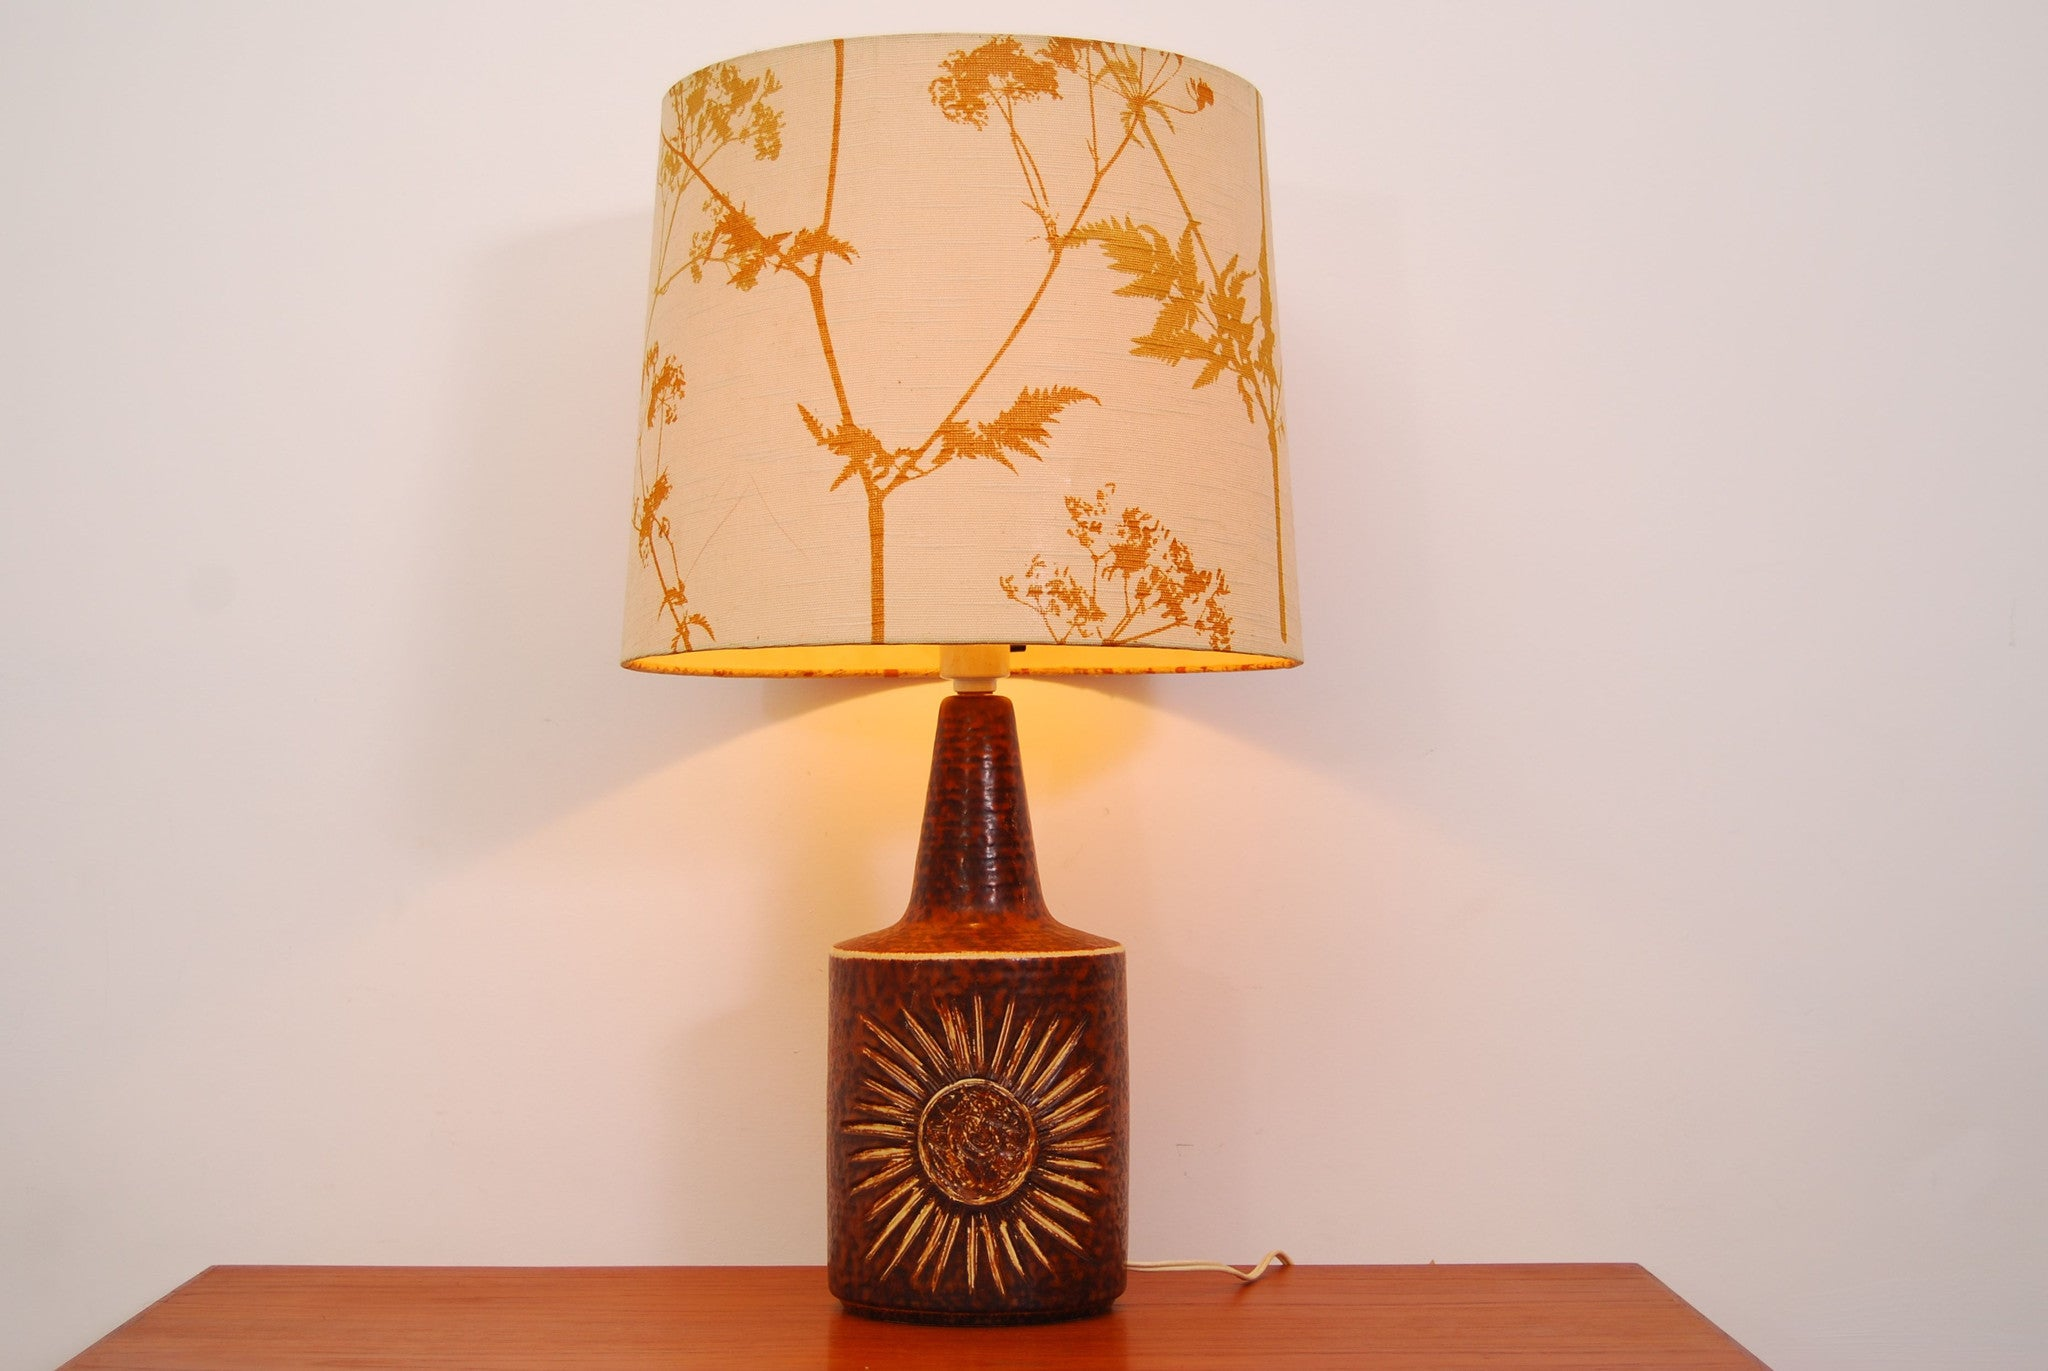 Ceramic table lamp by Bornholm